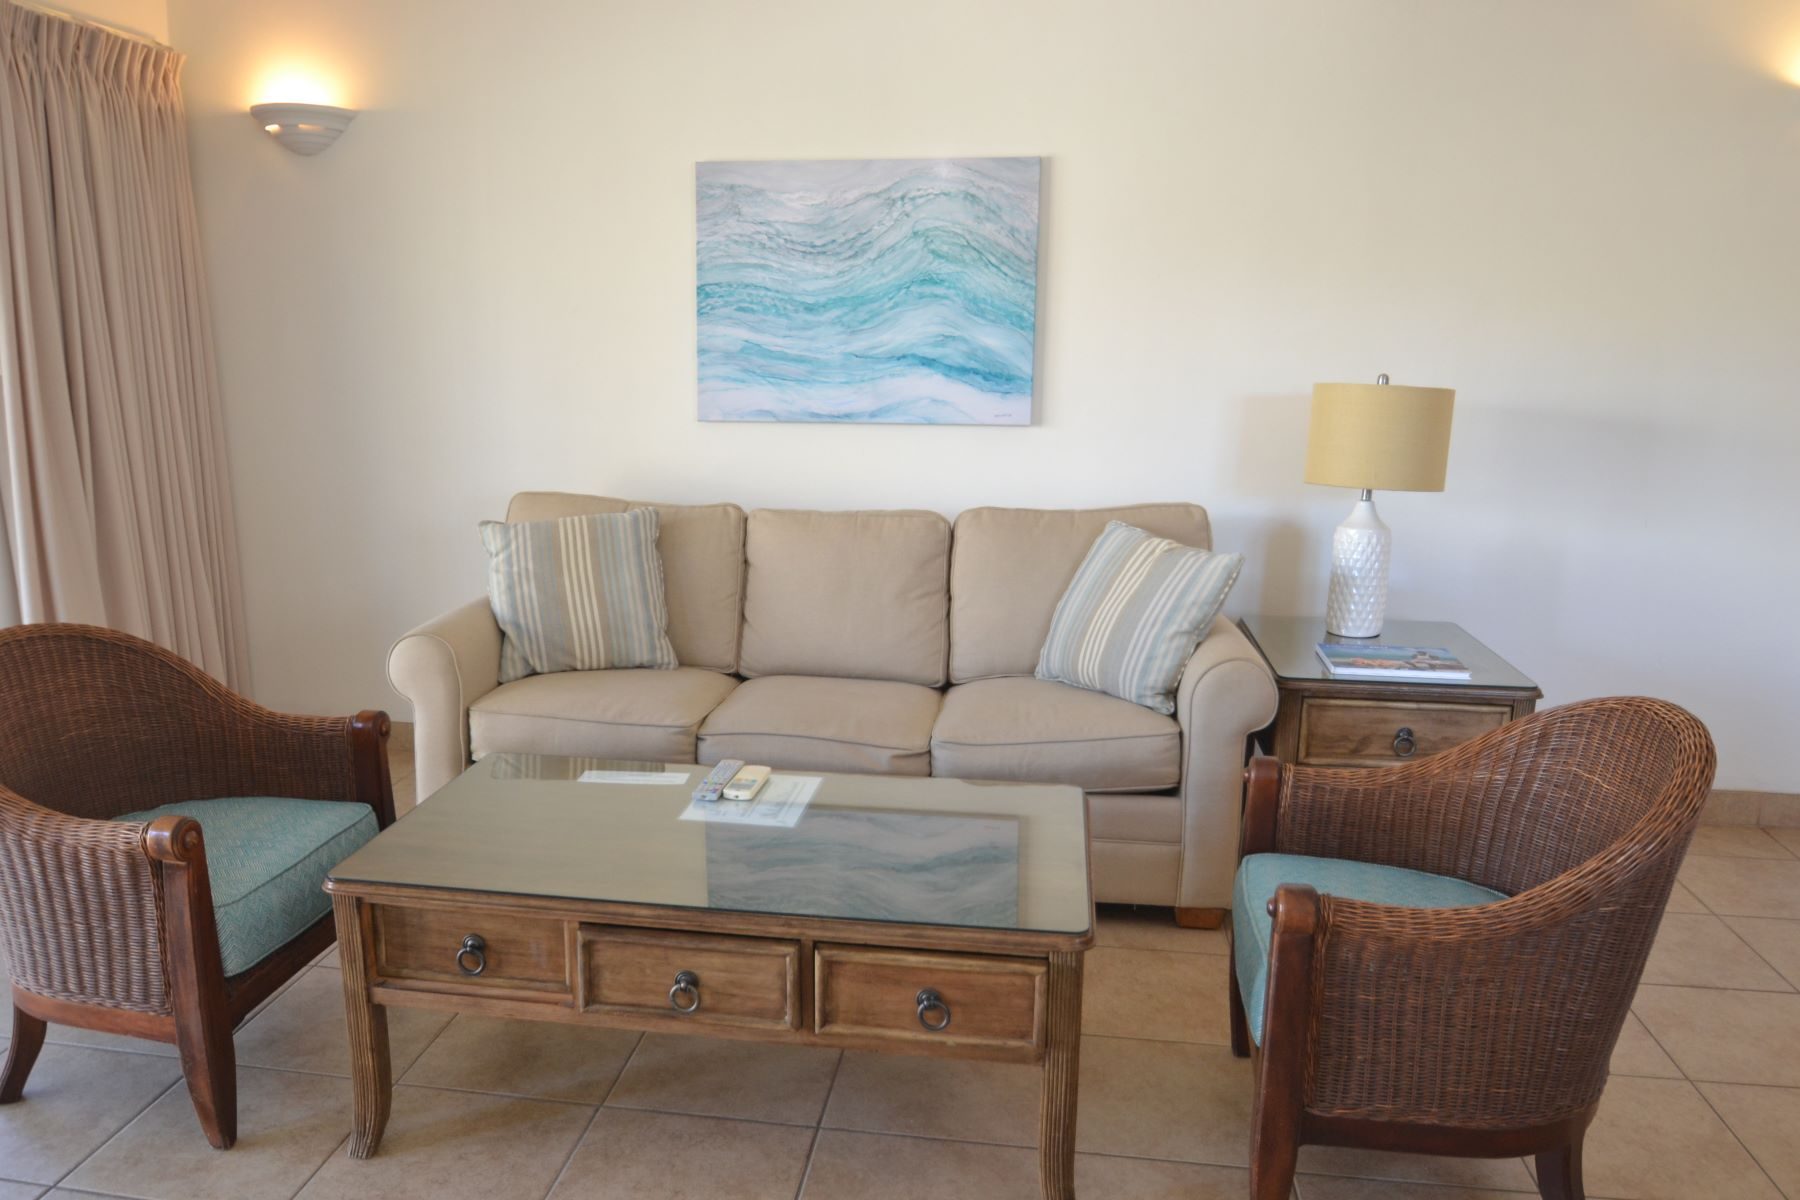 Additional photo for property listing at Reef Residences Reef Residences Grace Bay, Providenciales TKCA 1ZZ Islas Turcas Y Caicos